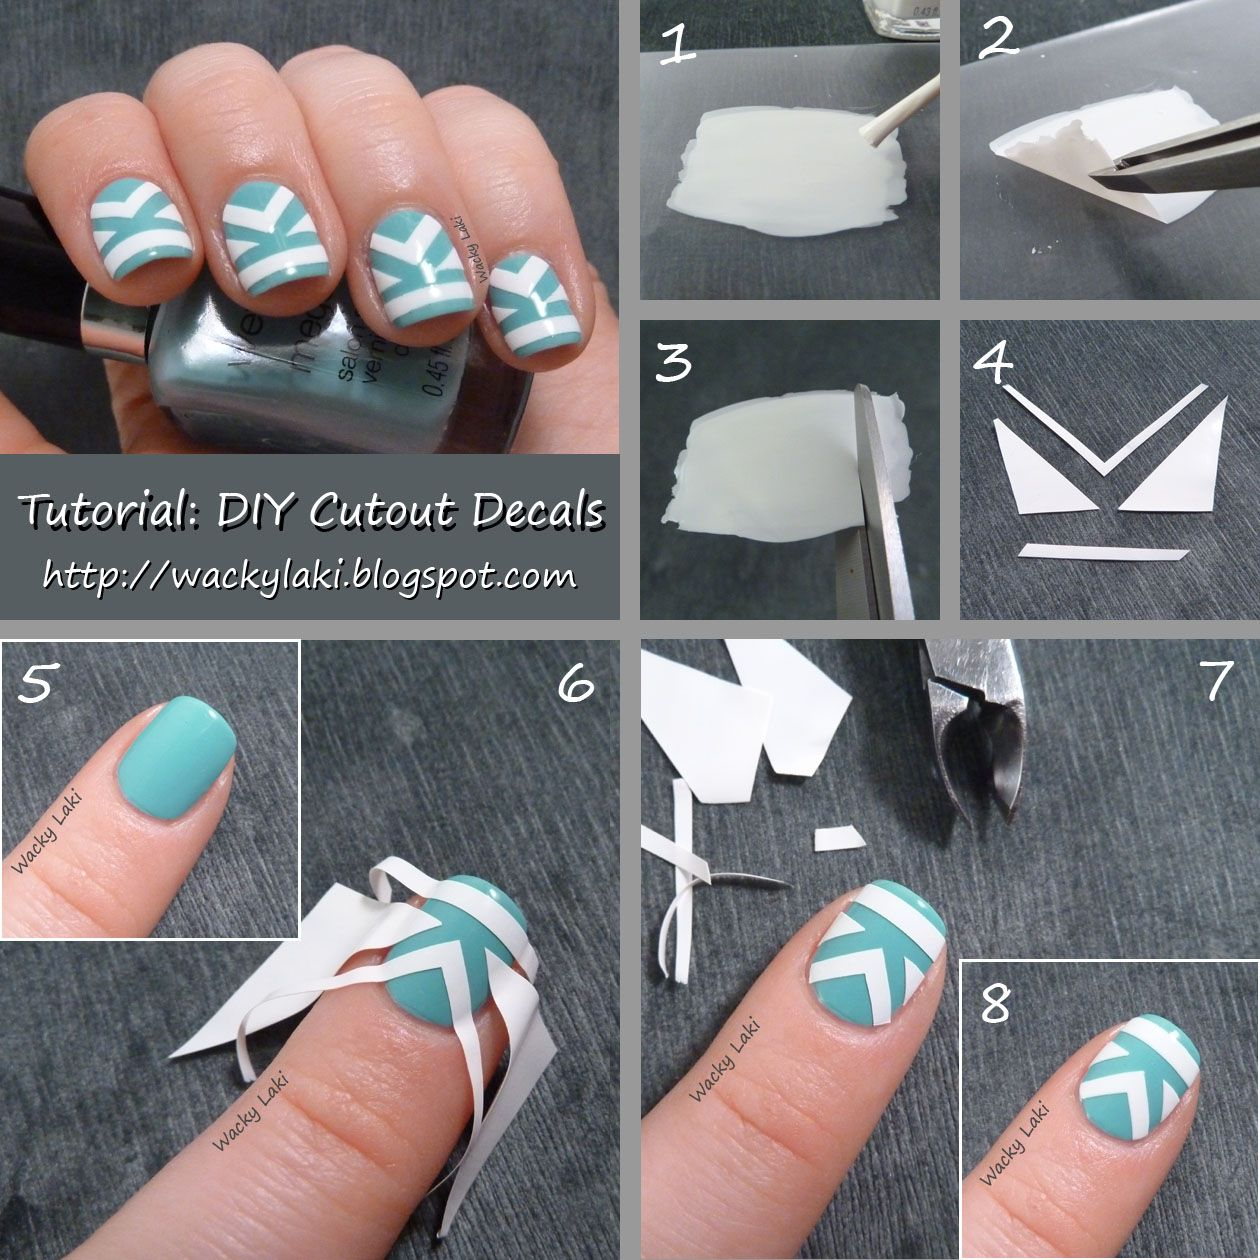 make your own nail decals with polish and a ziplock bag | Get that ...